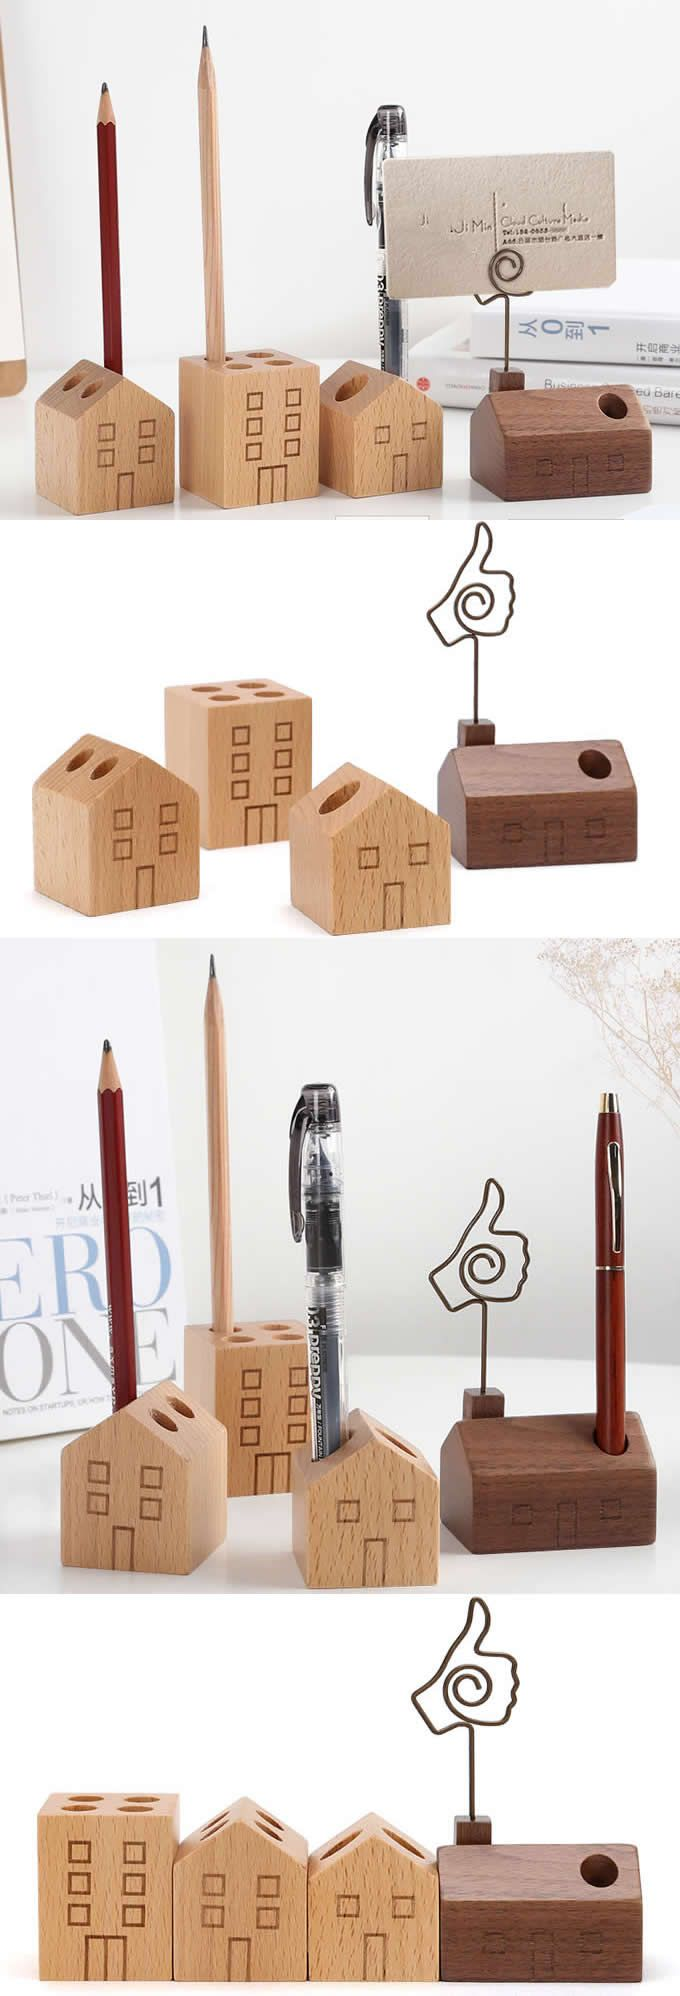 Wooden House Shaped Single Pen Stand Holder Office Desk Stationery